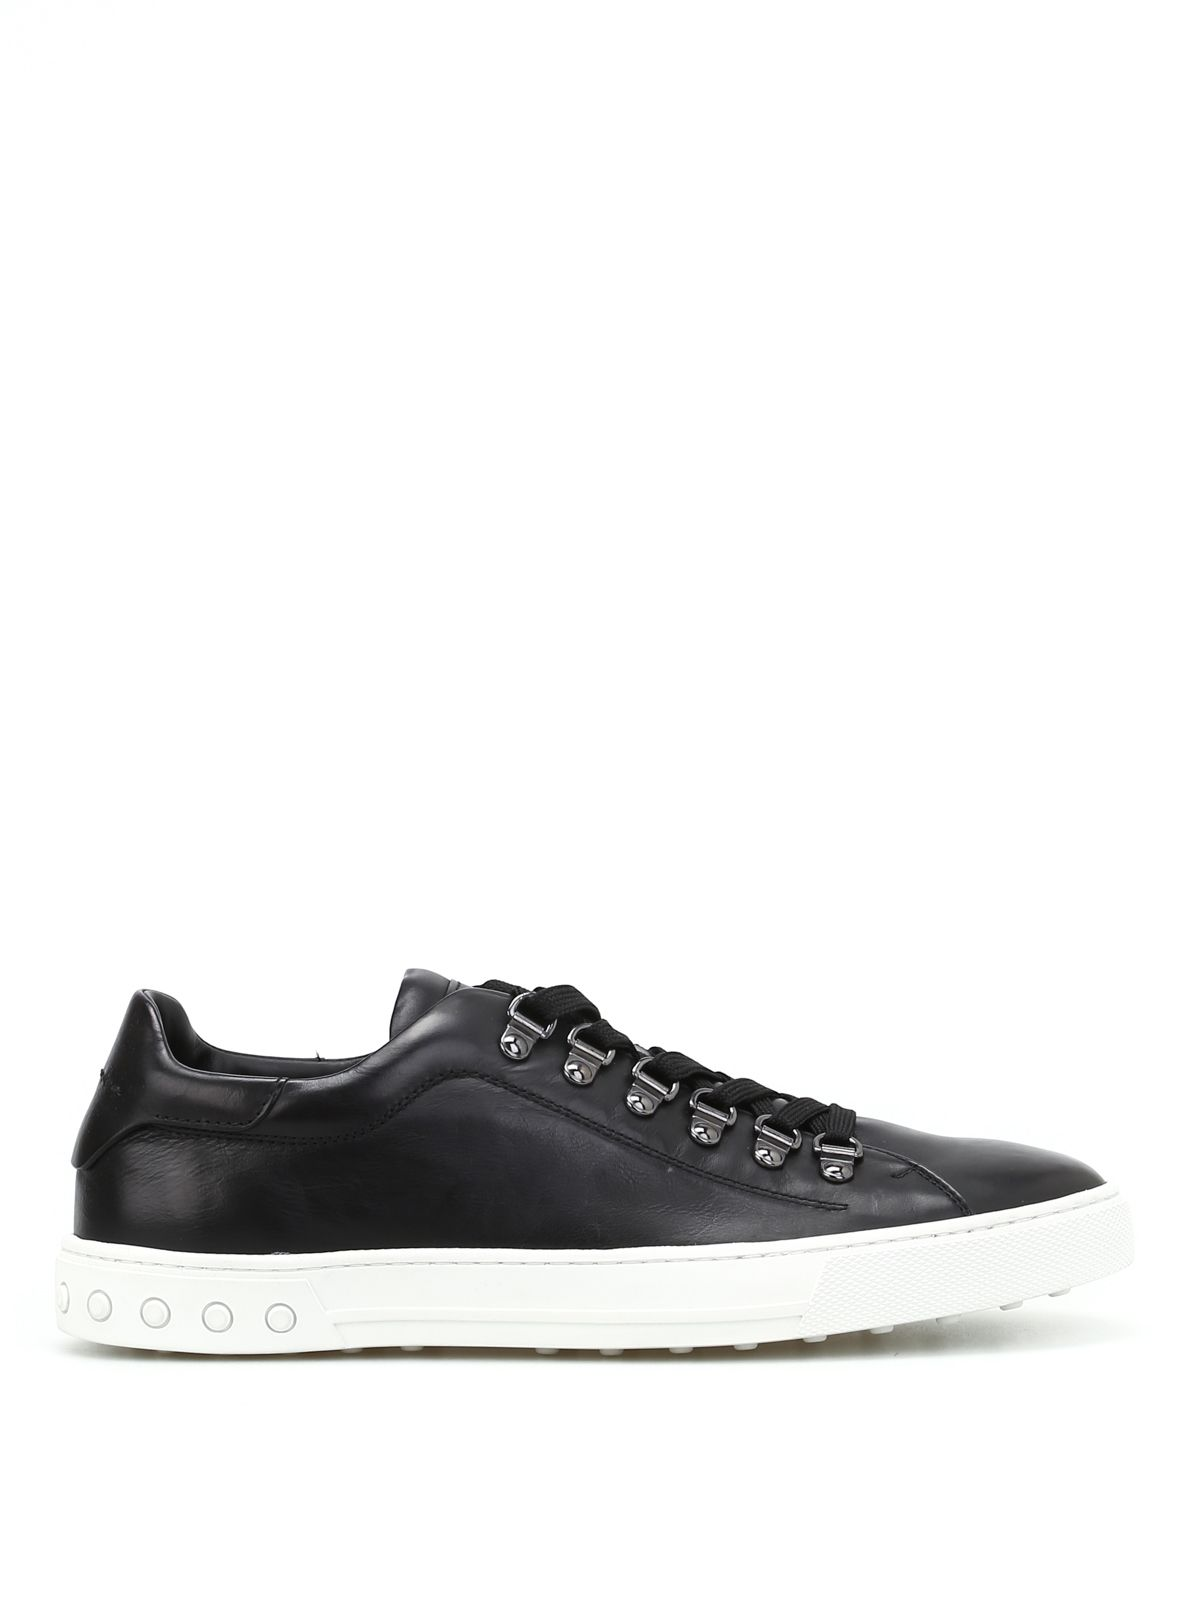 Tod's Men's Shoes Leather Trainers Sneakers In Black